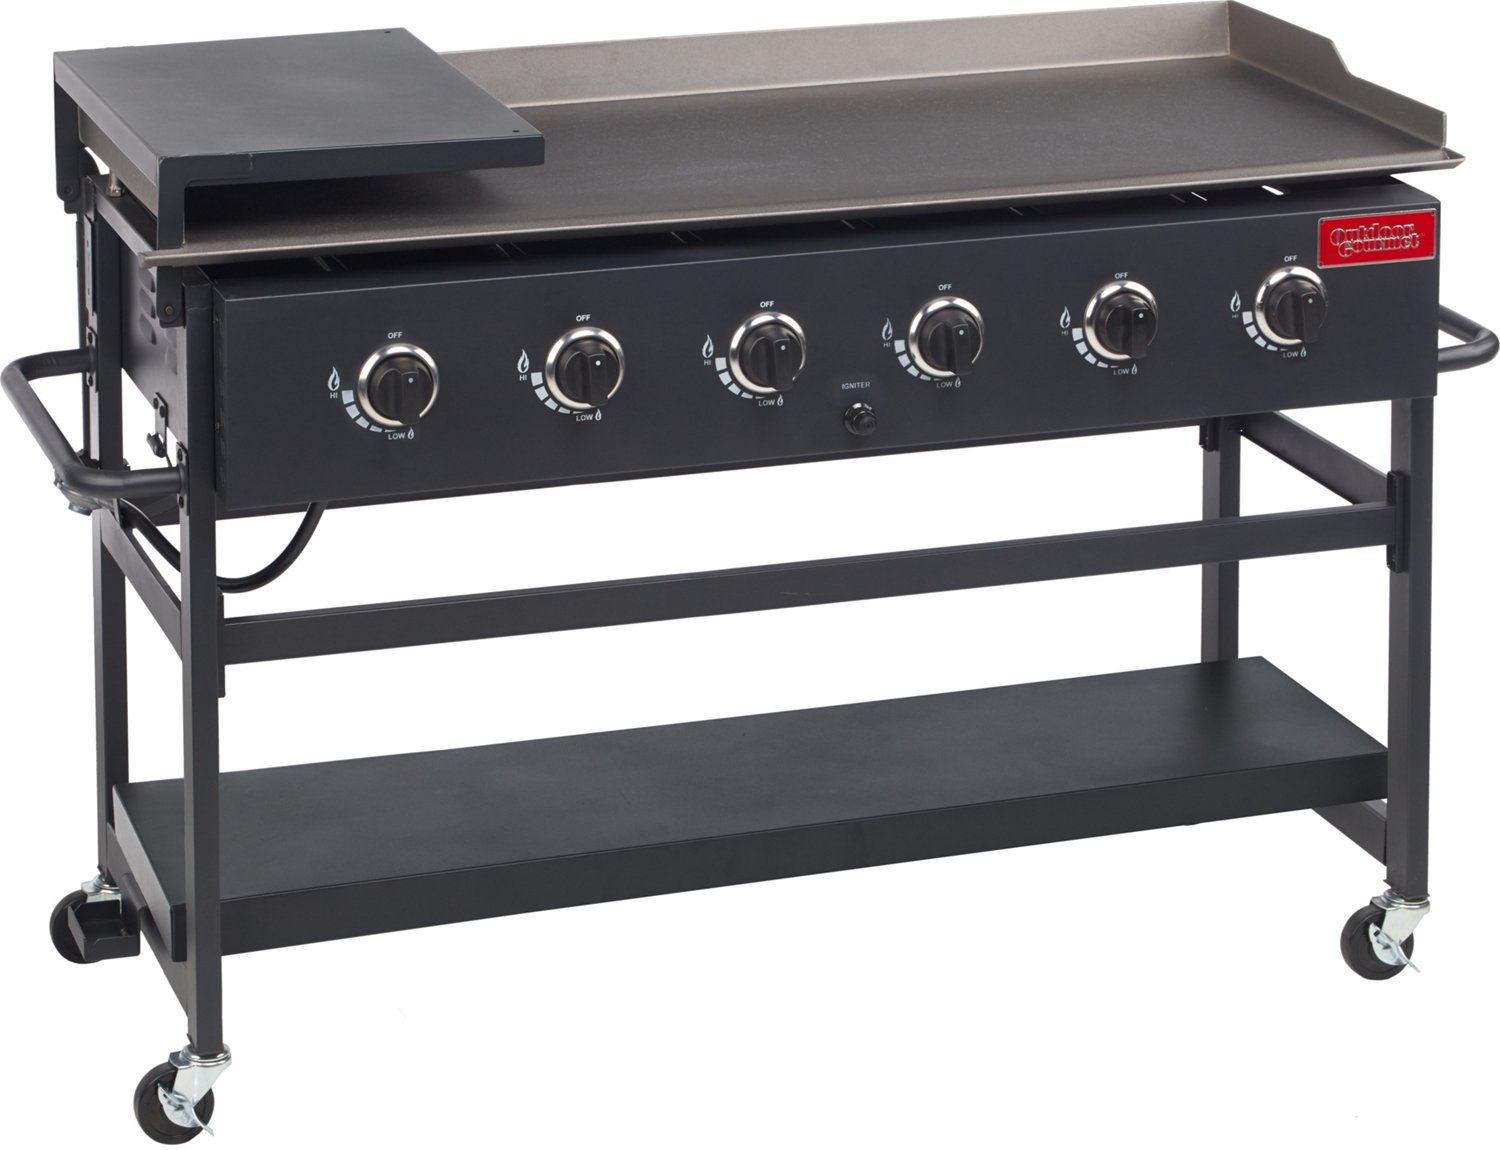 Outdoor Gourmet 6 Burner Gas Griddle